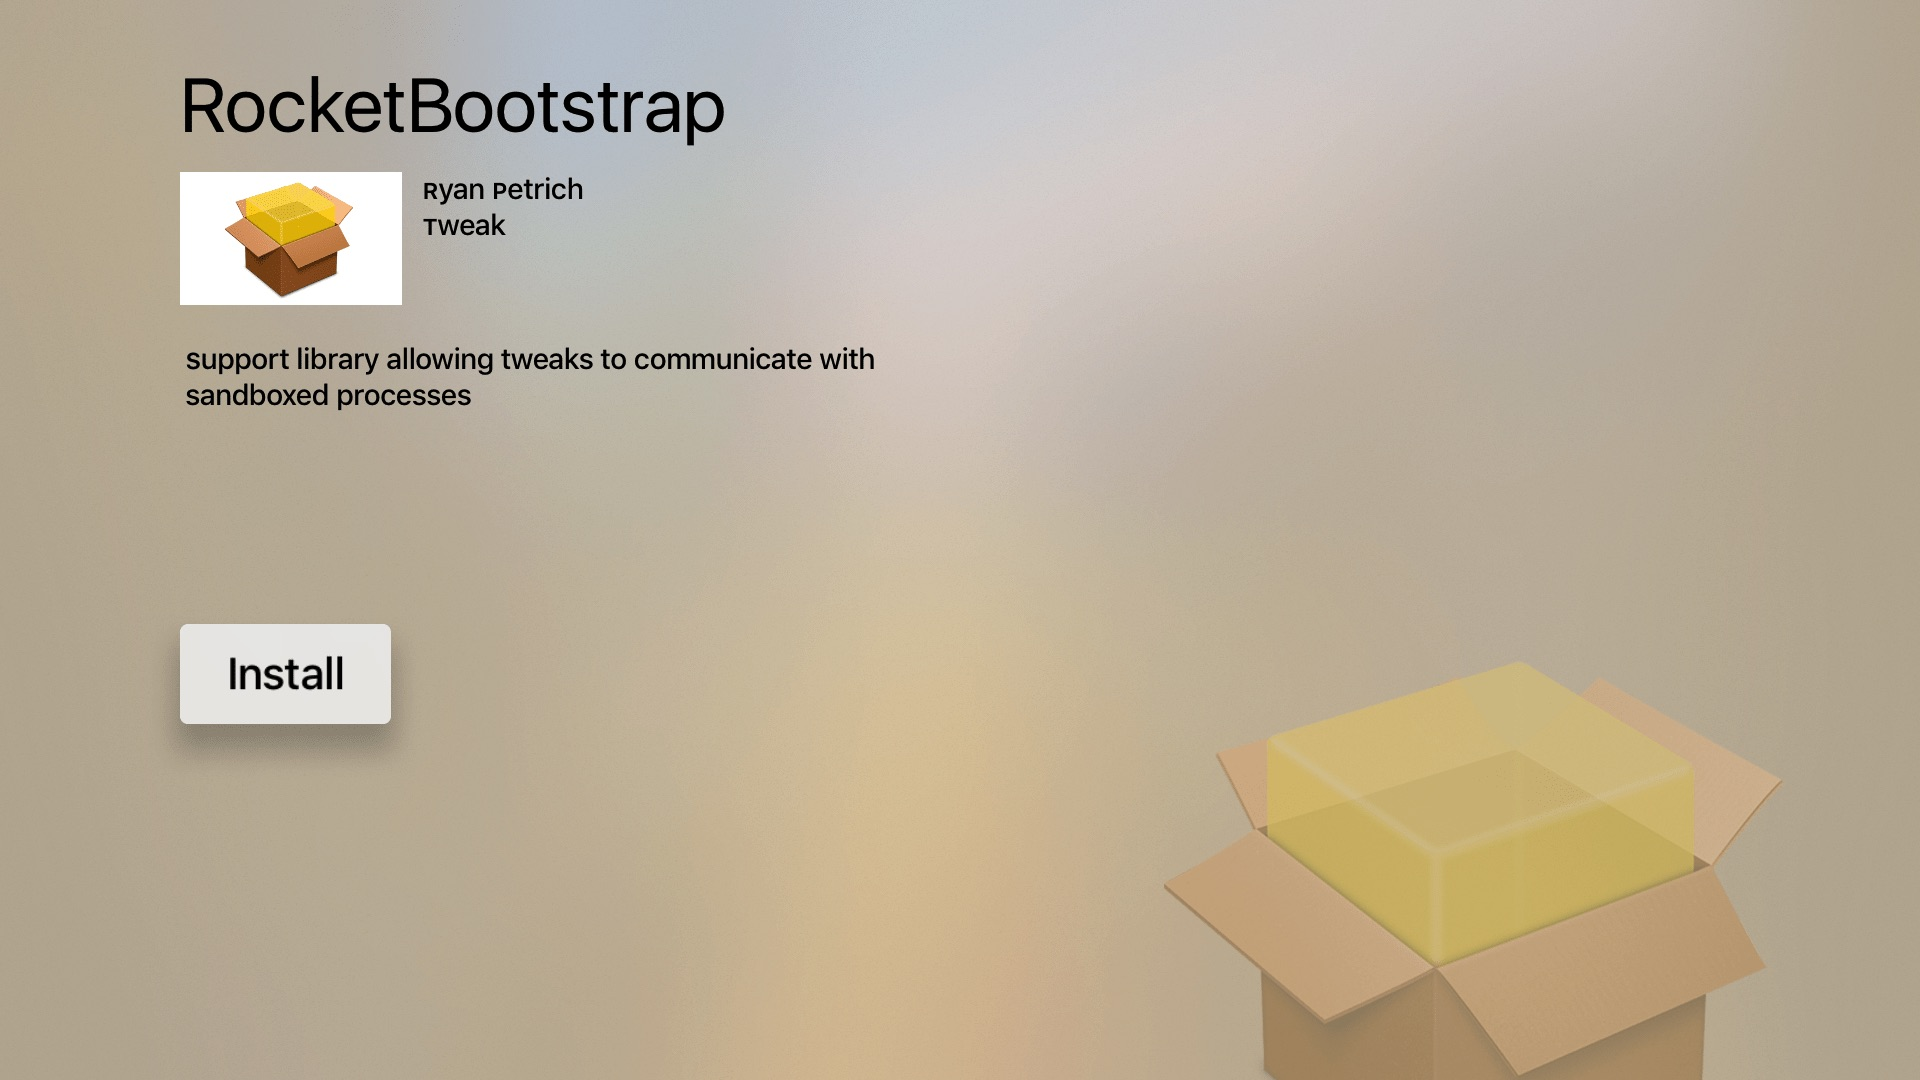 Rocket Bootstrap package view